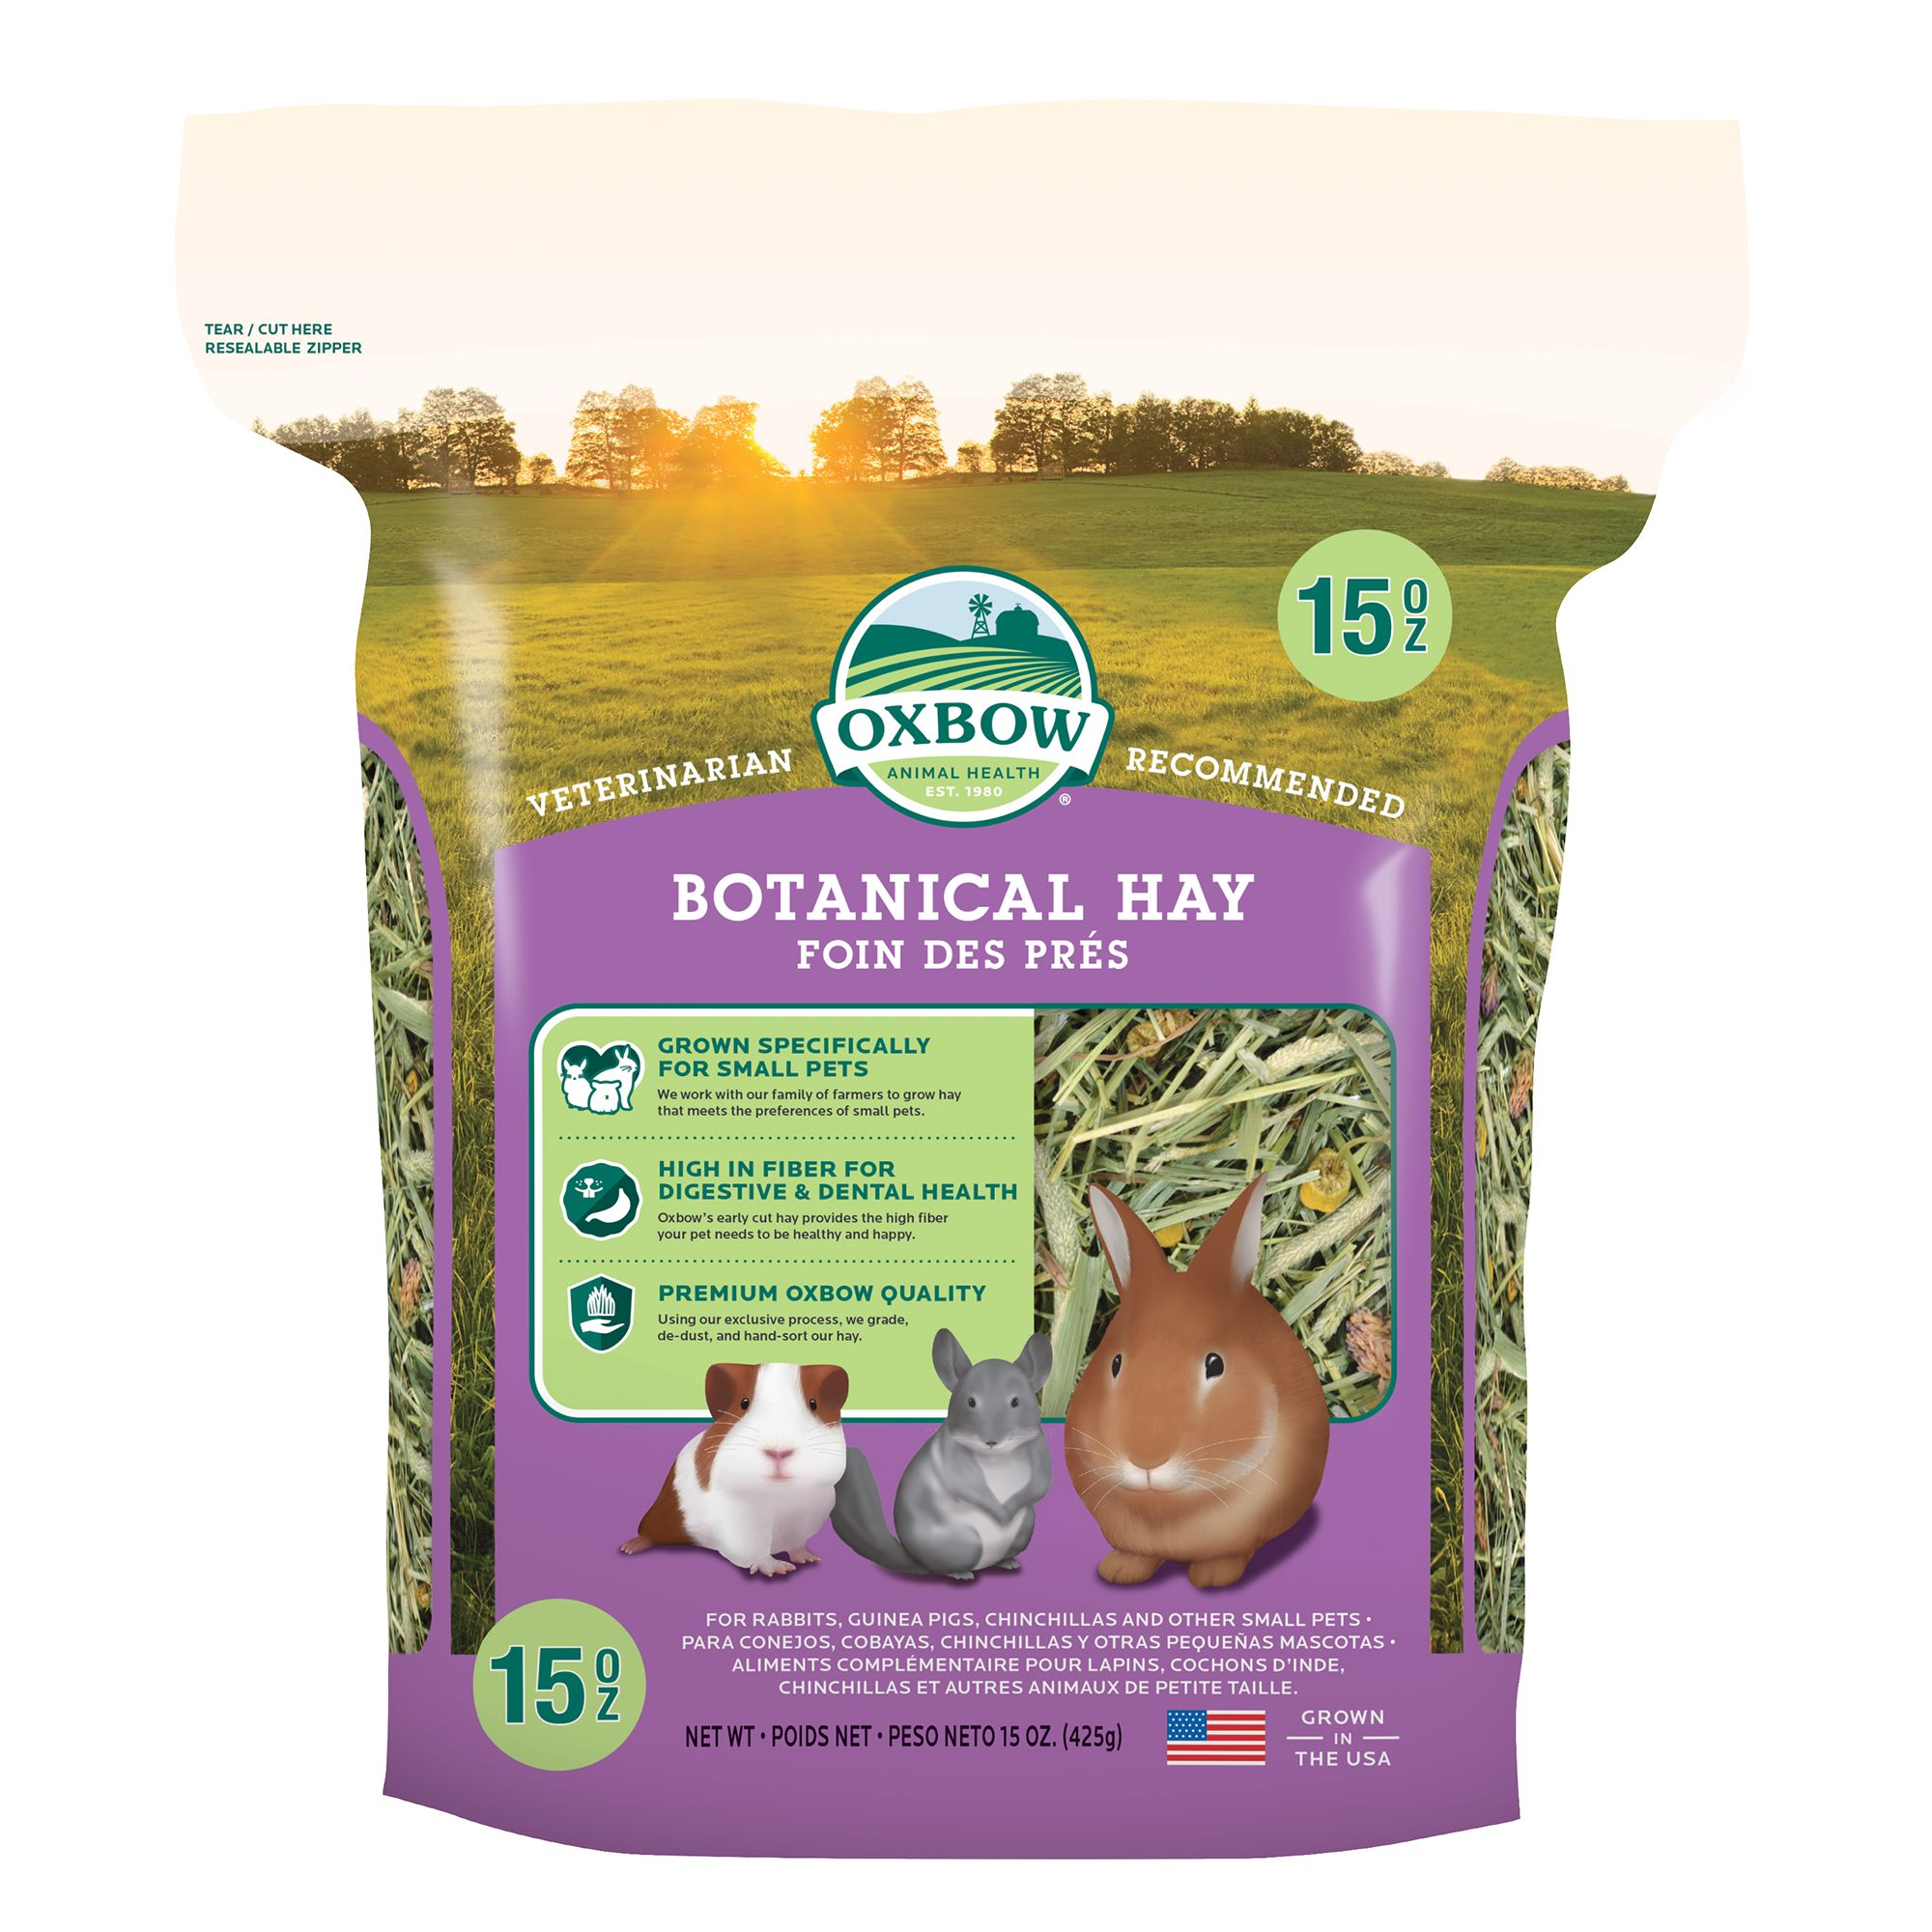 Oxbow Botanical Hay Size 15 Oz